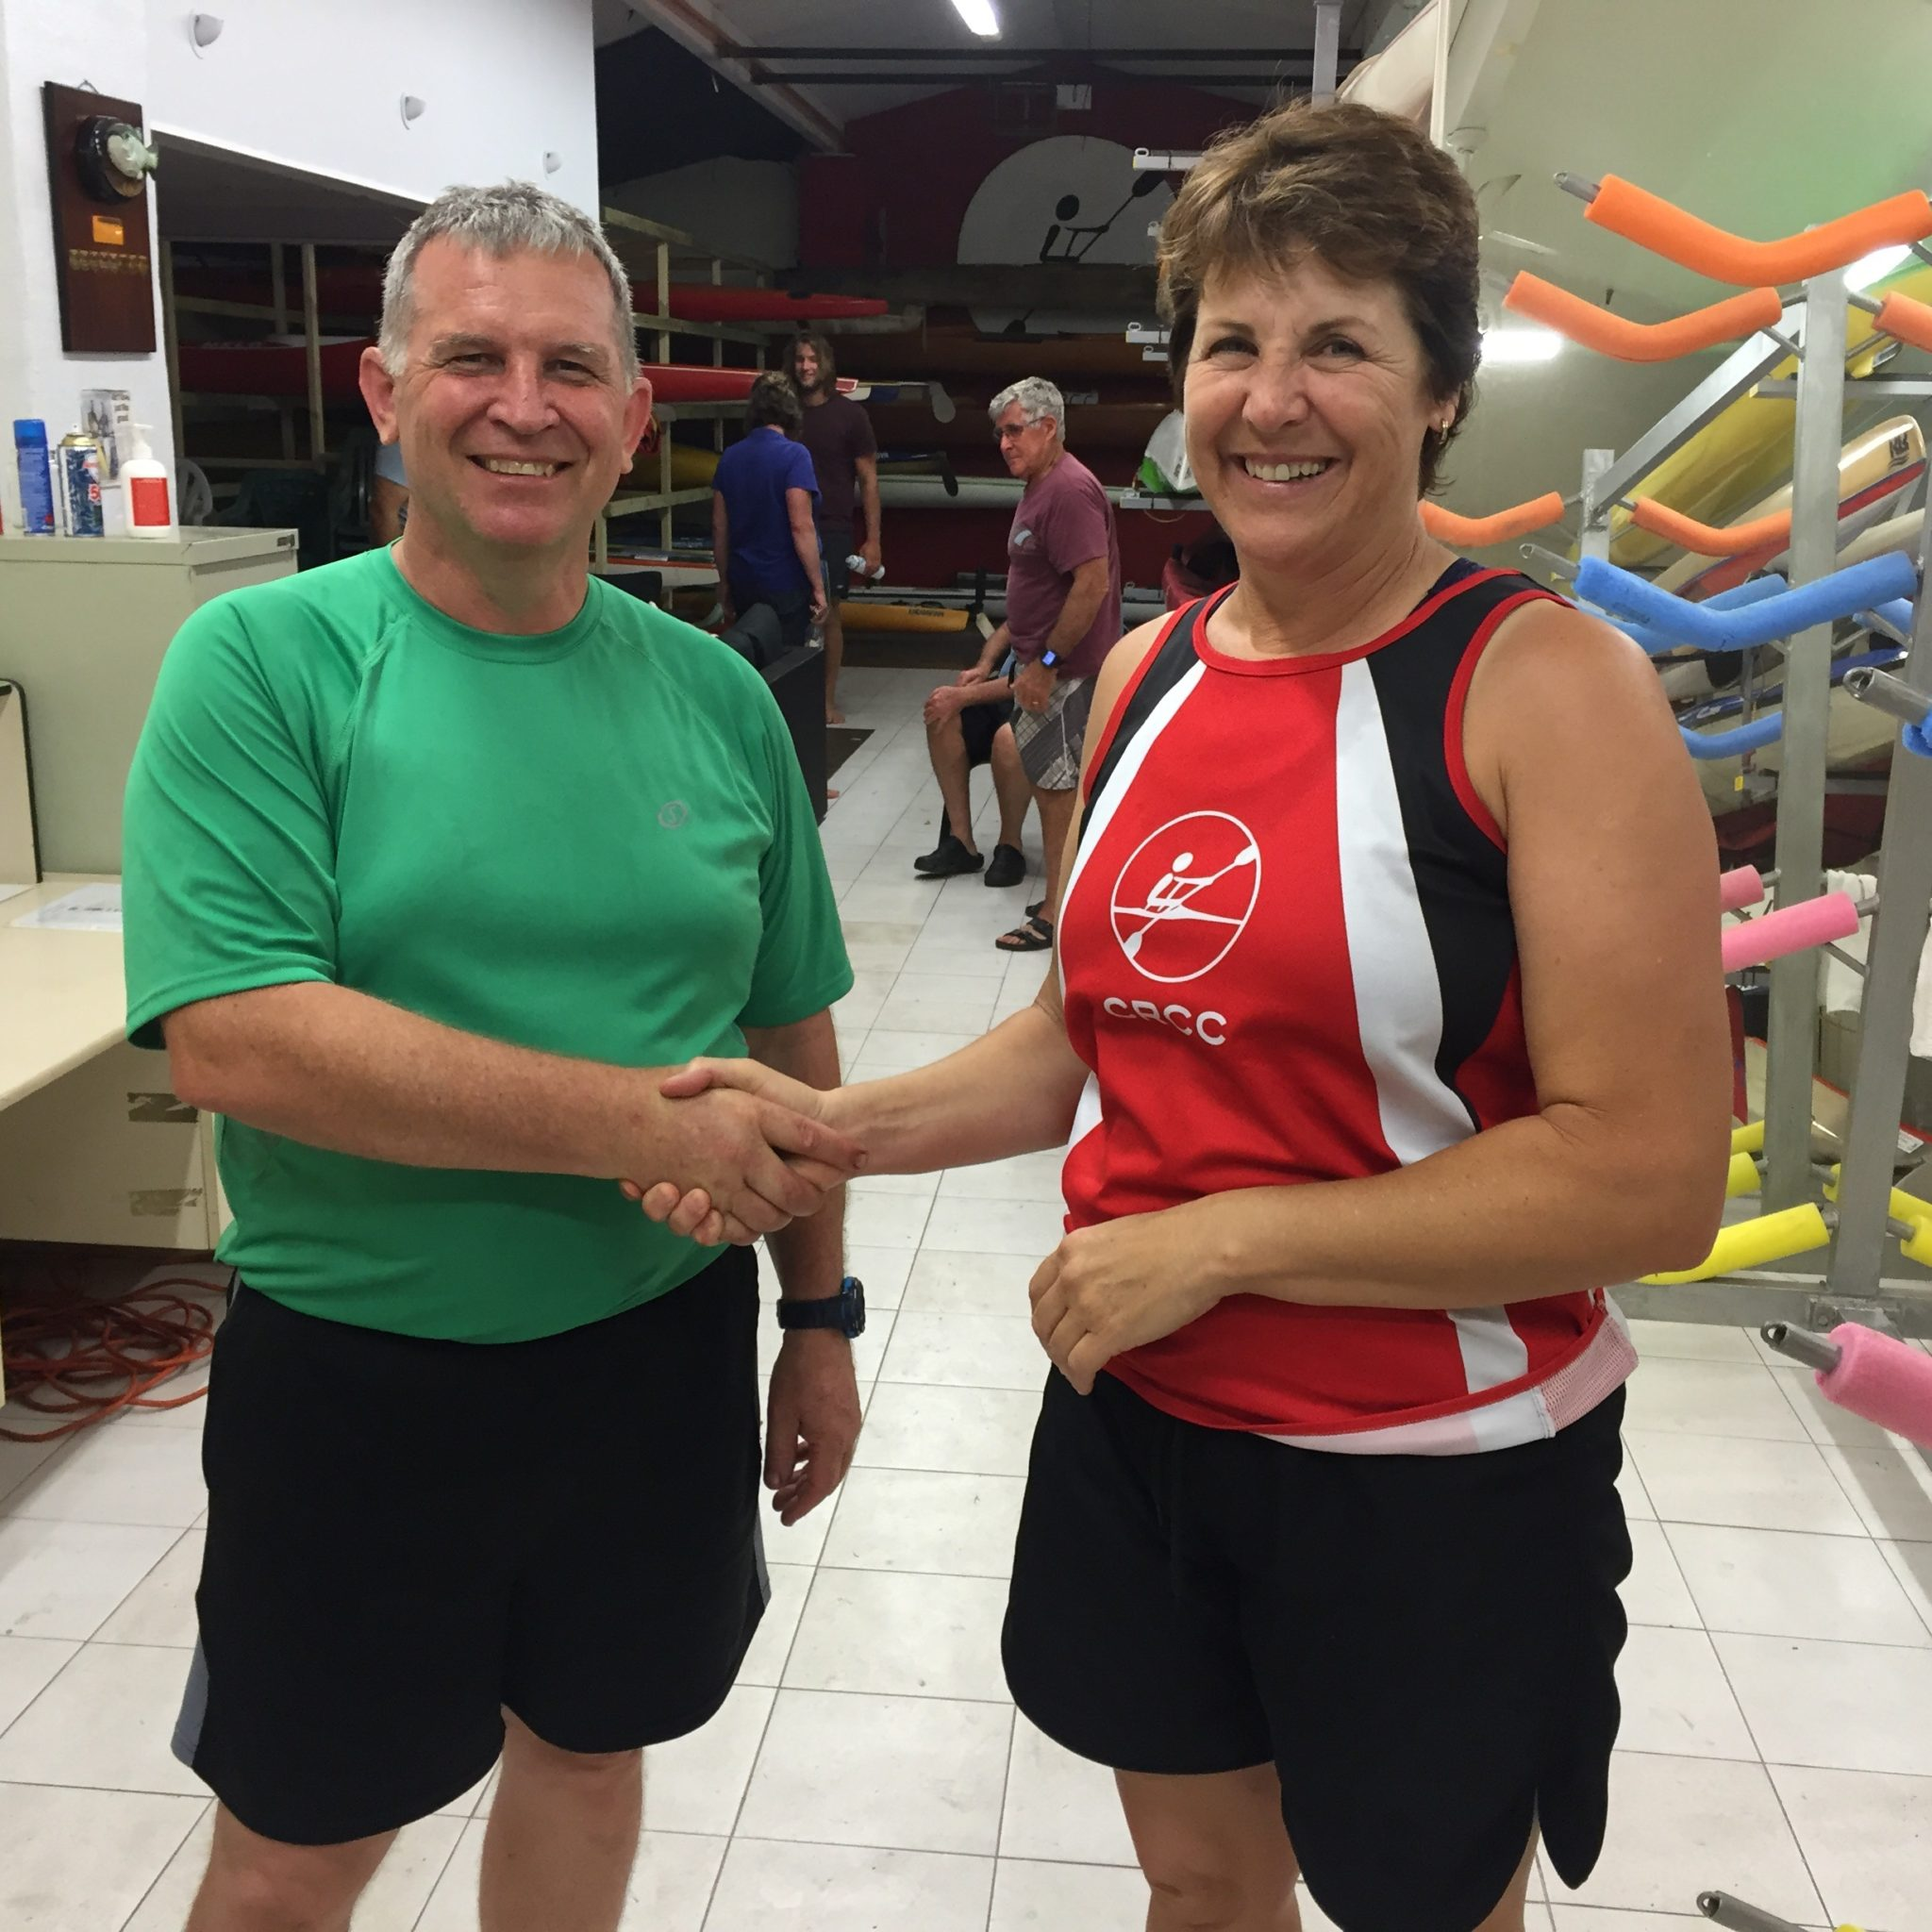 Tues 24th Jan 2017 : Tonights photo shows Club Treasurer Simone Burge presenting David with a movie voucher